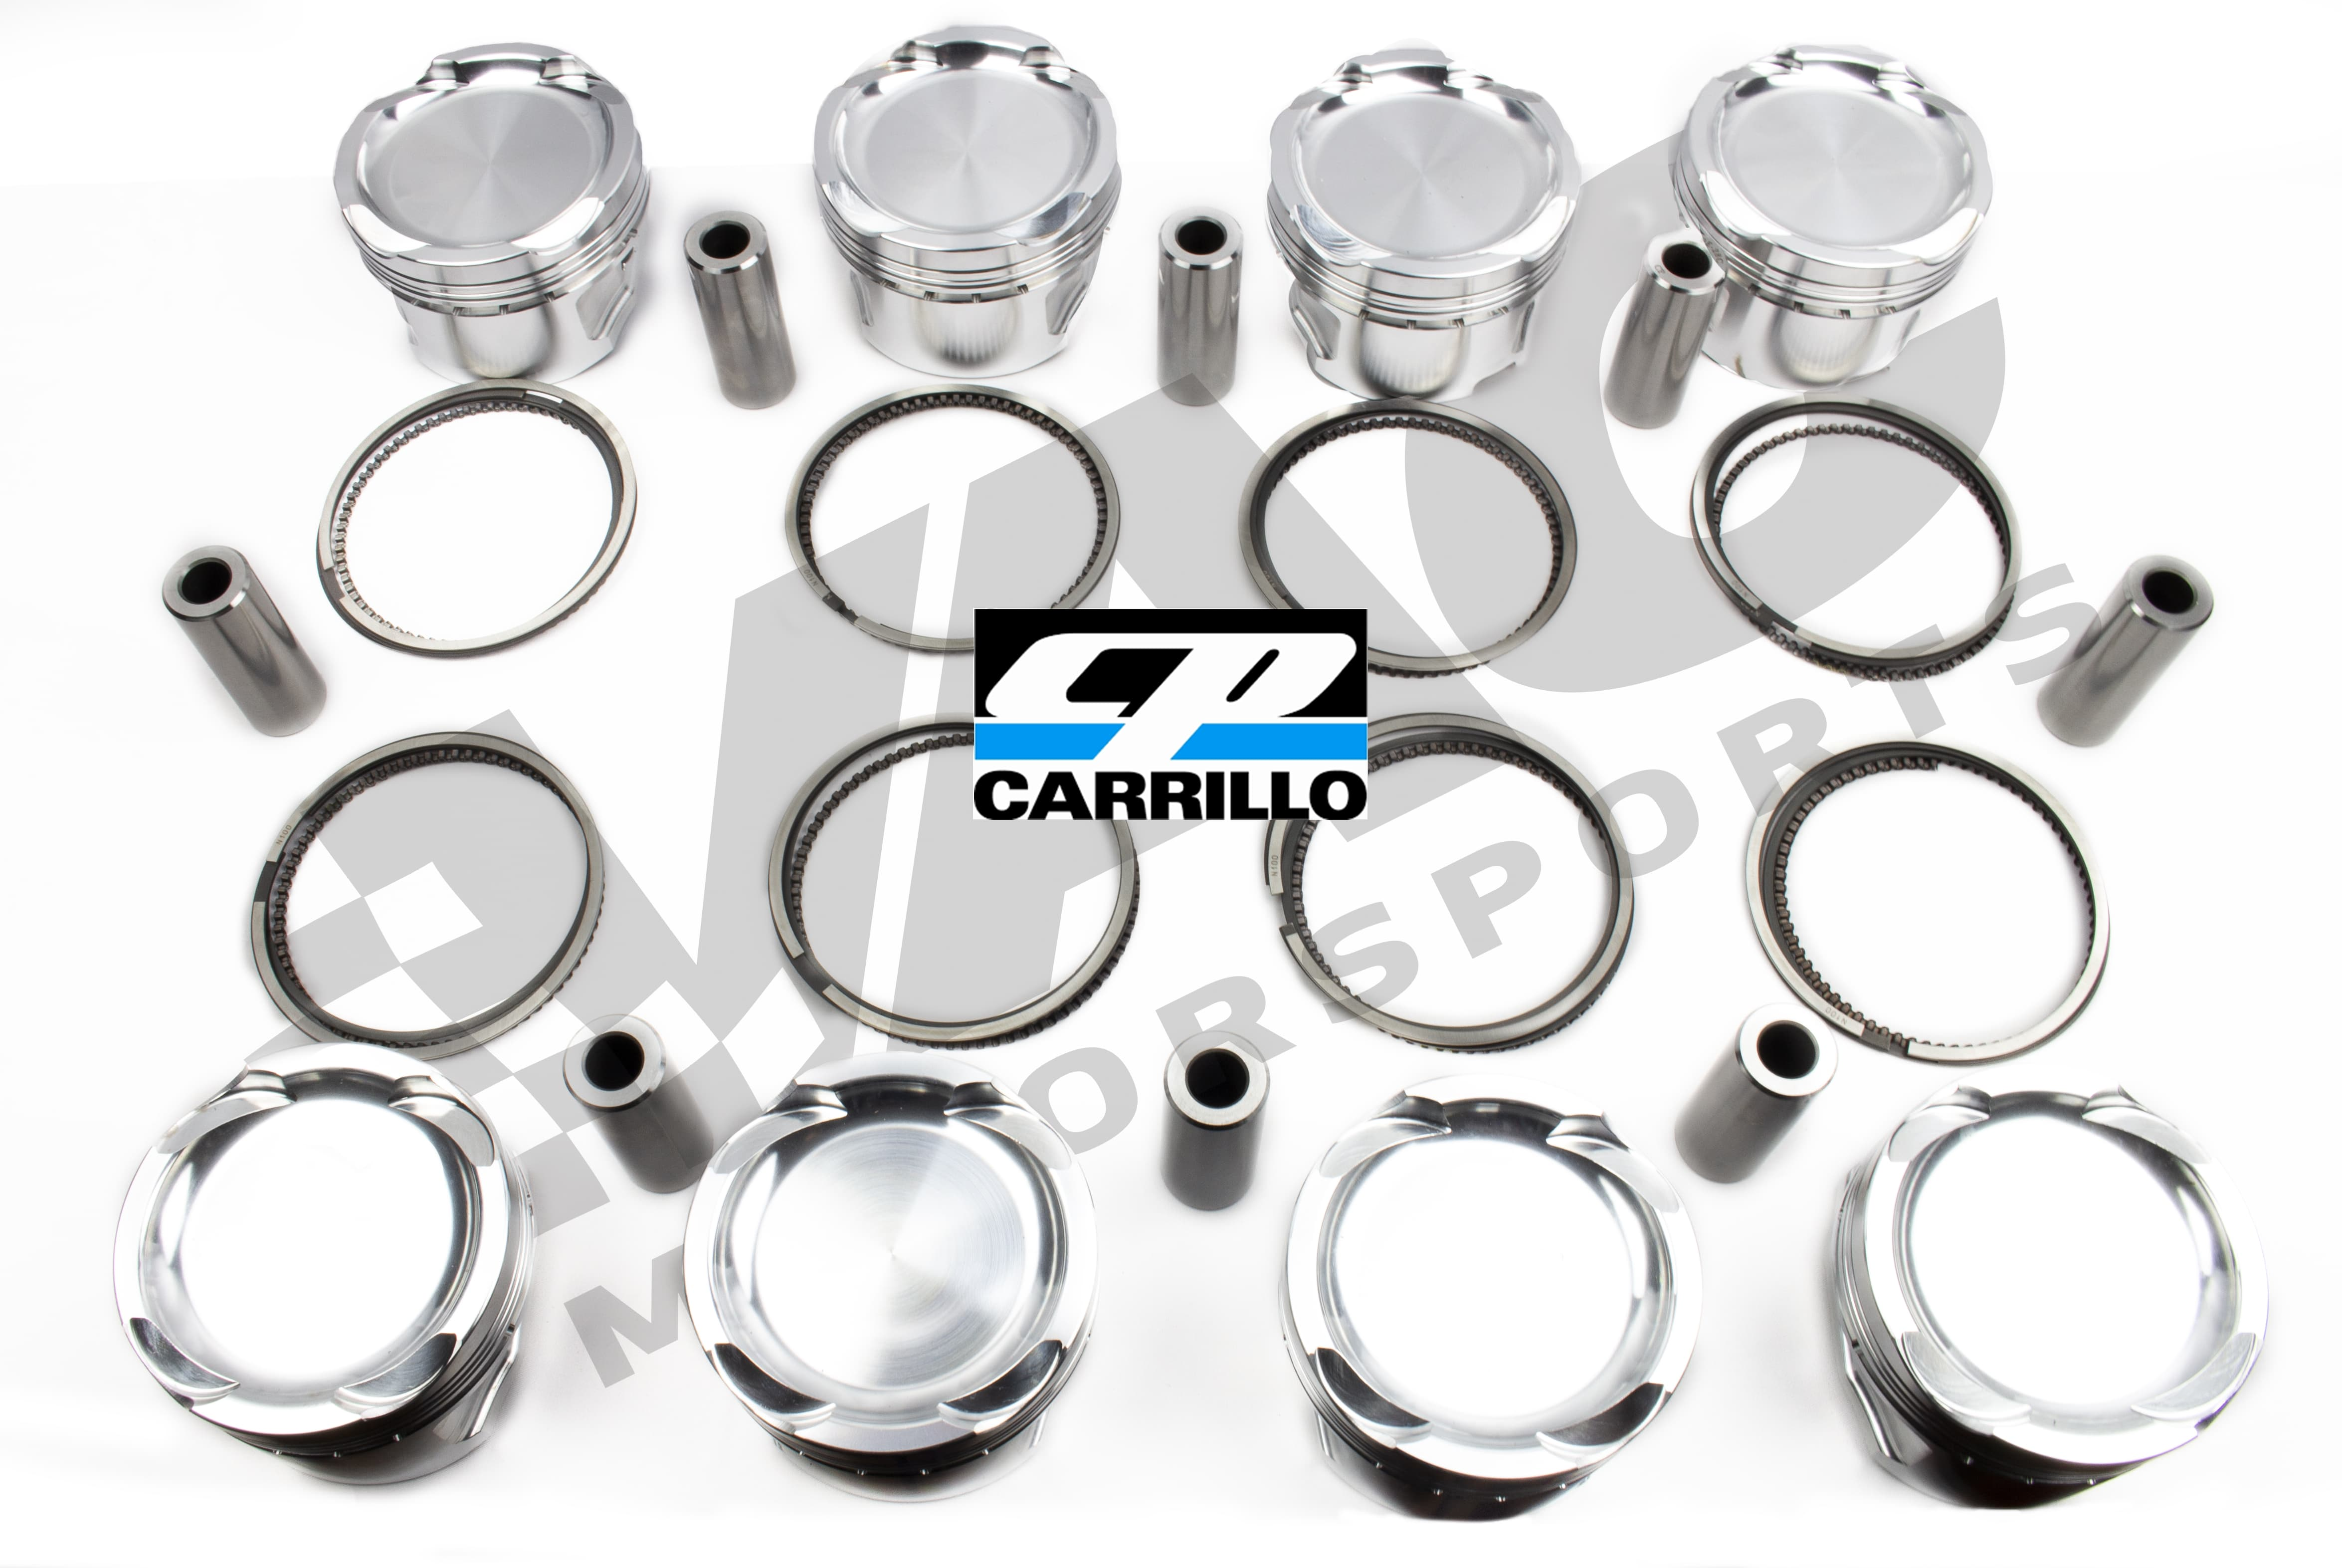 CP-Carrillo Forged Piston Set (BMW M60) MAIN